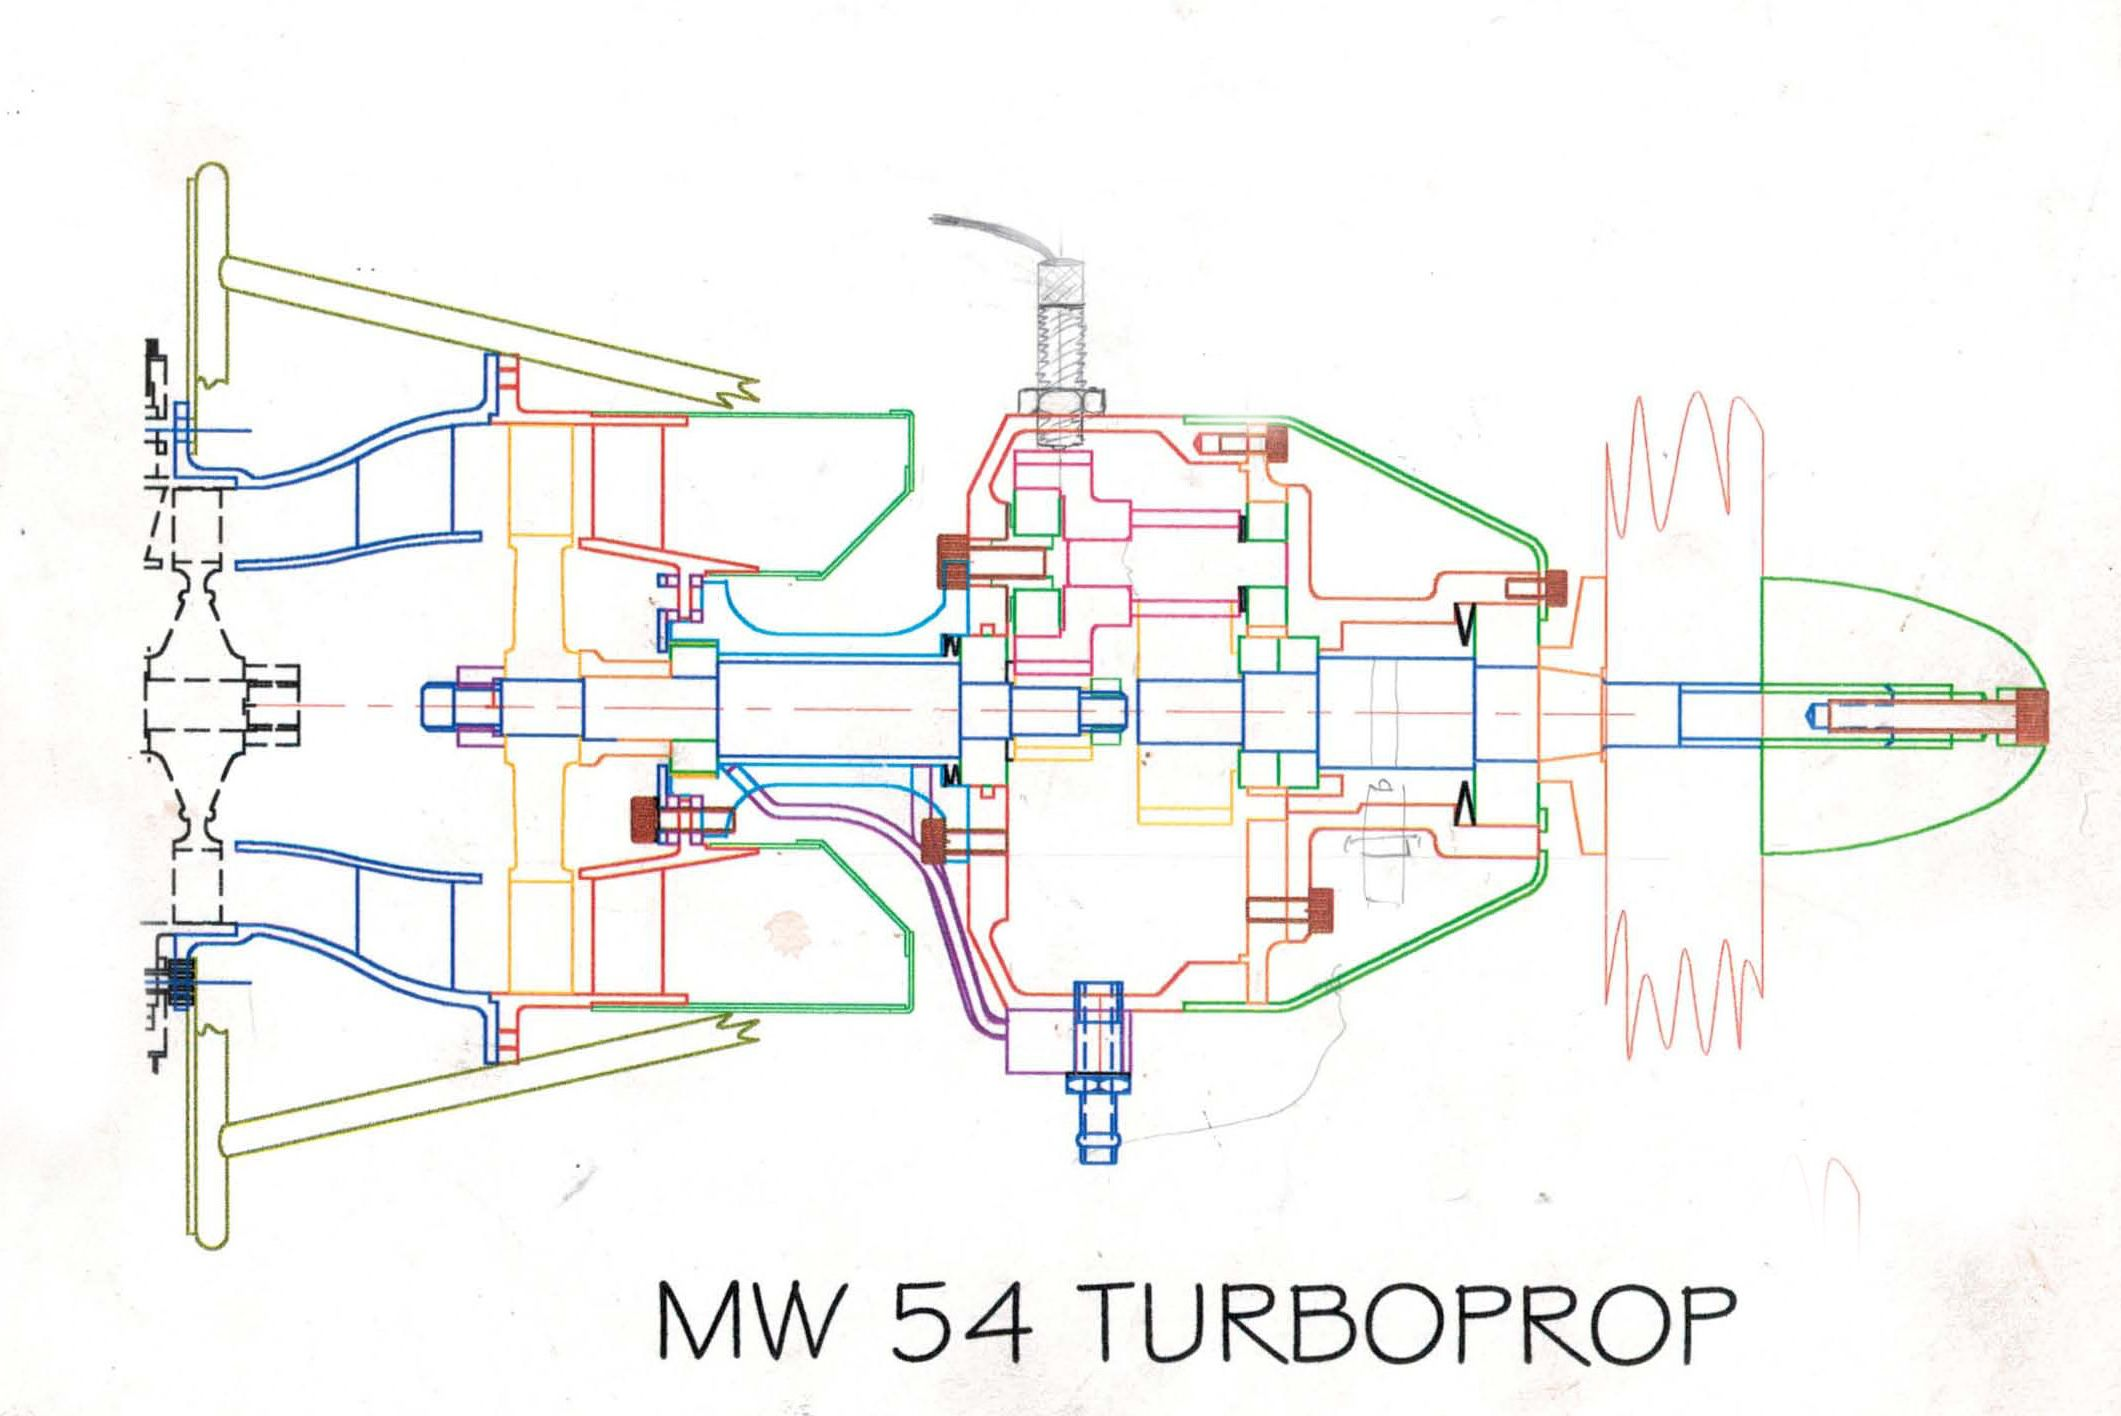 Turboprop Jet Engine Plans free